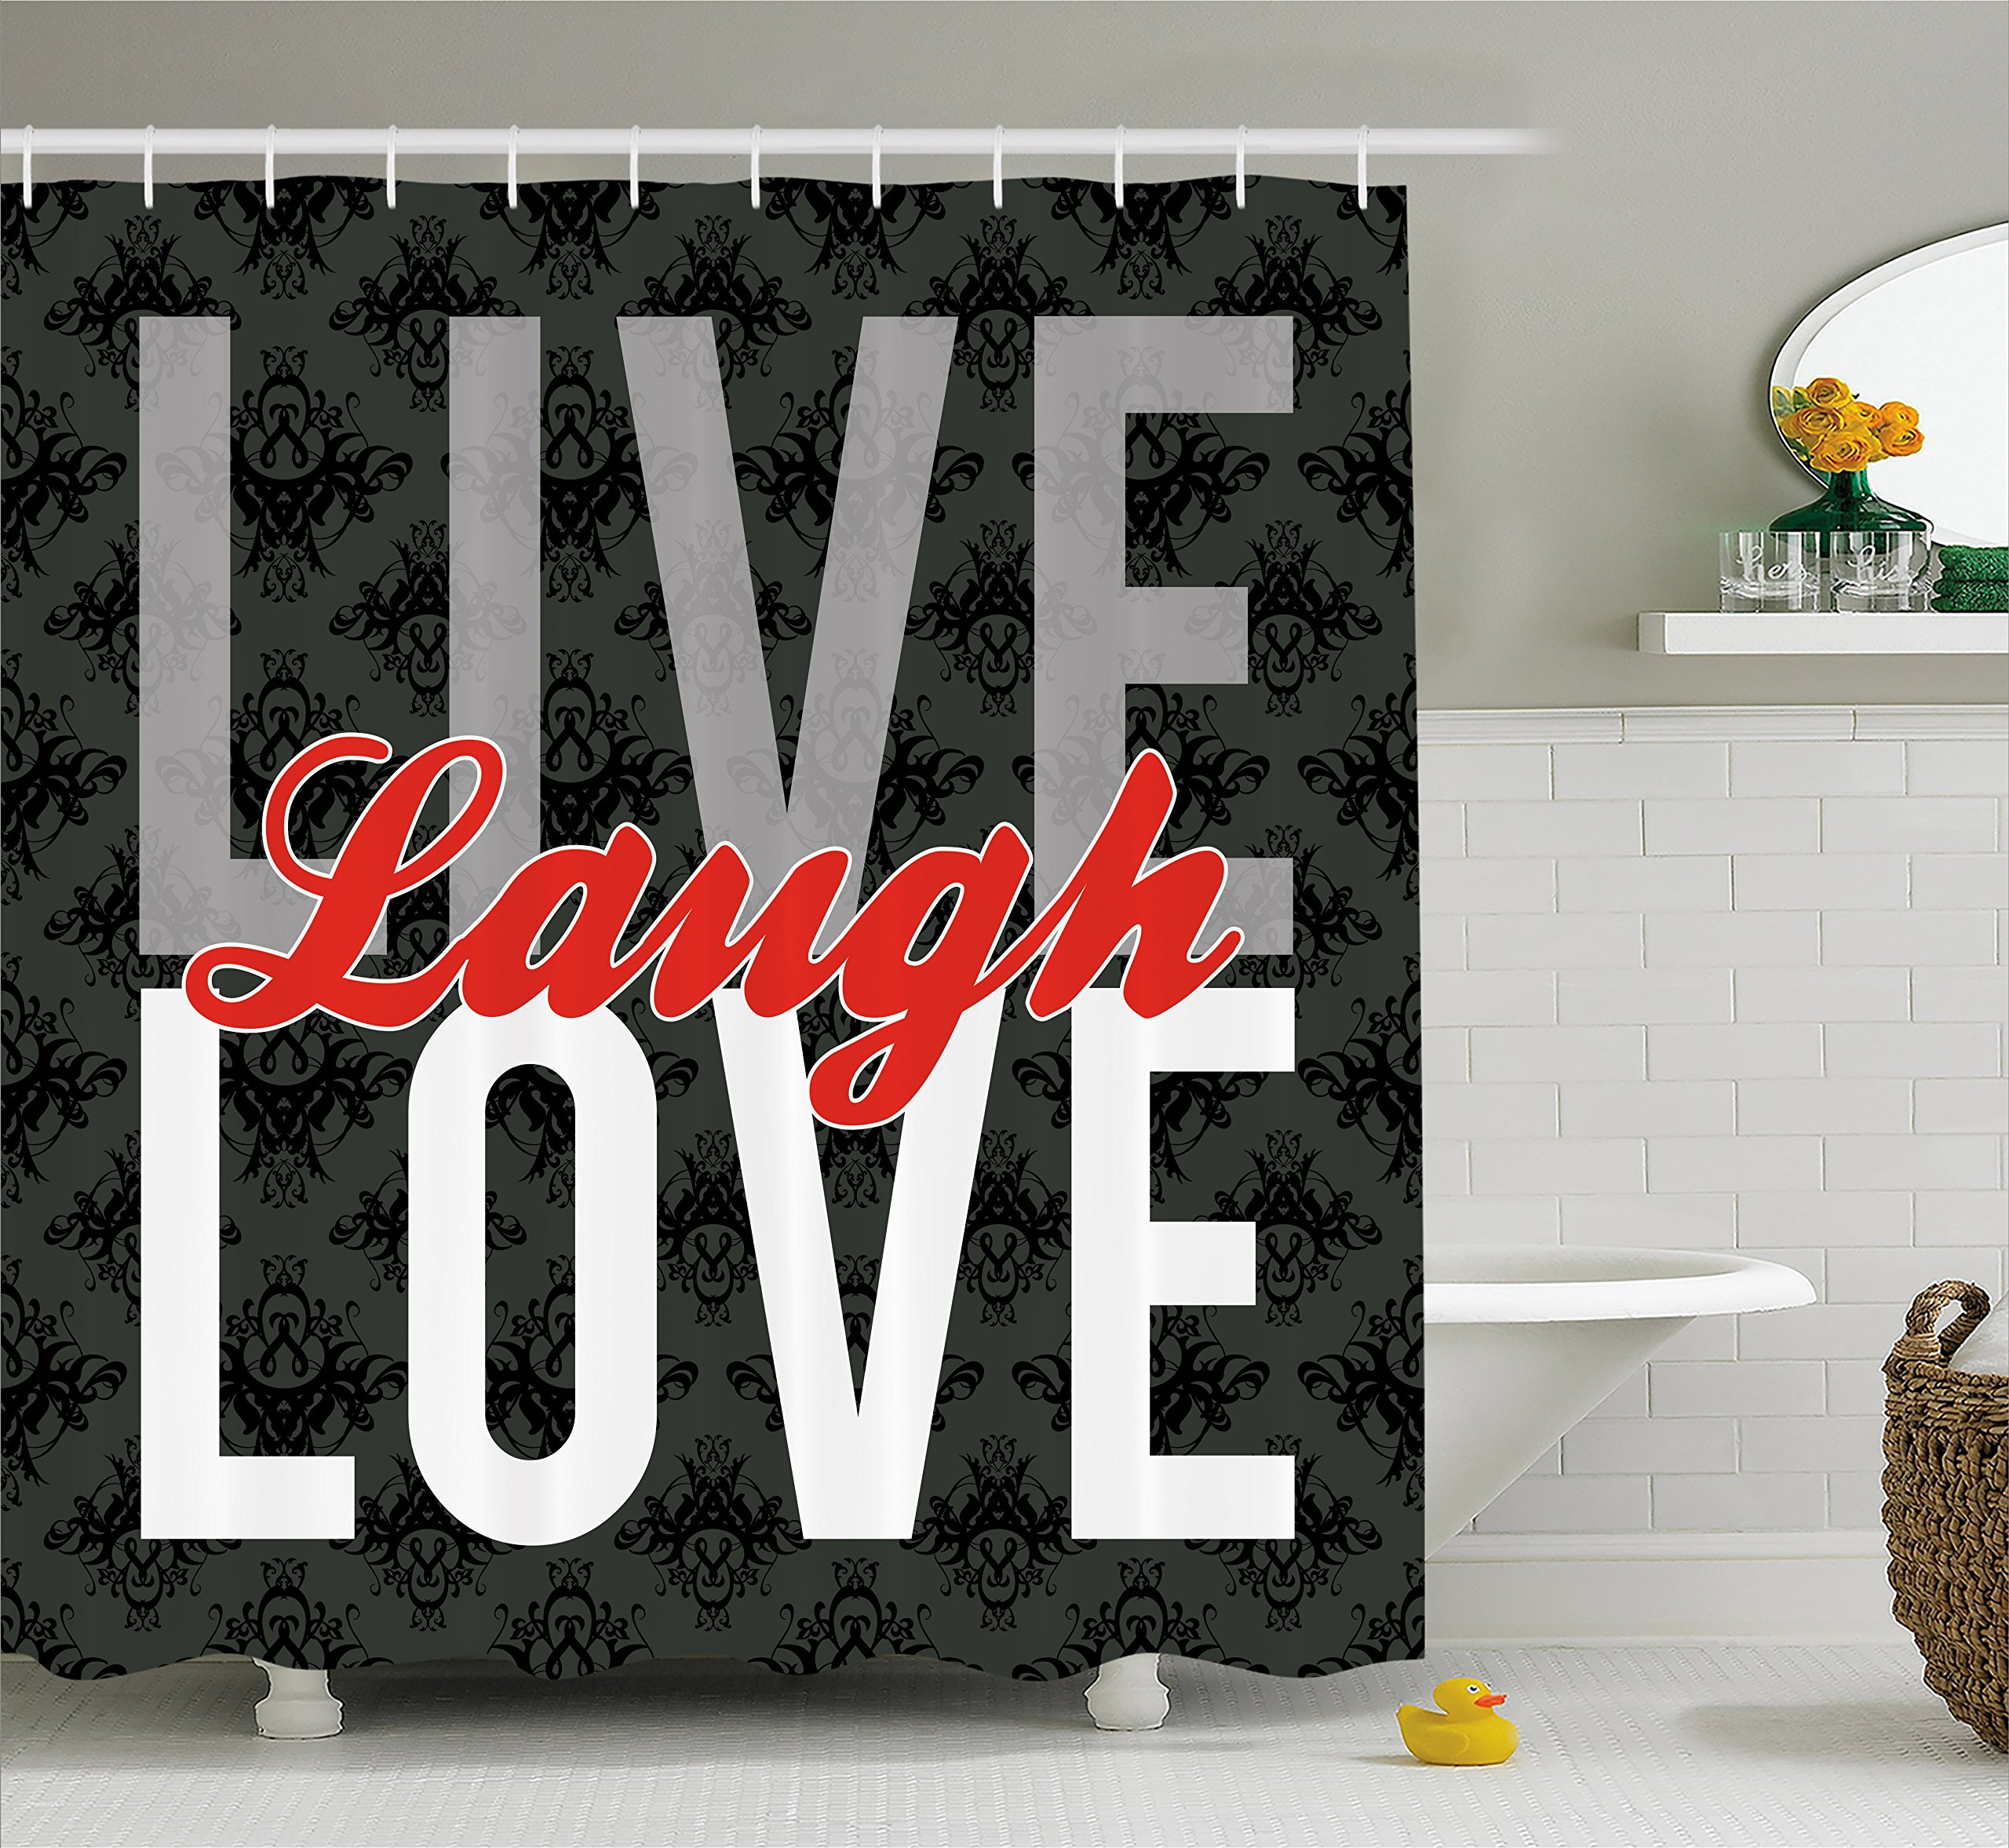 Ambesonne Live Laugh Love Decor Shower Curtain, Different Typed Words of Wisdom Victorian Antique Damask Motifs Tile, Fabric Bathroom Decor Set with Hooks, 75 Inches Long, Multicolor